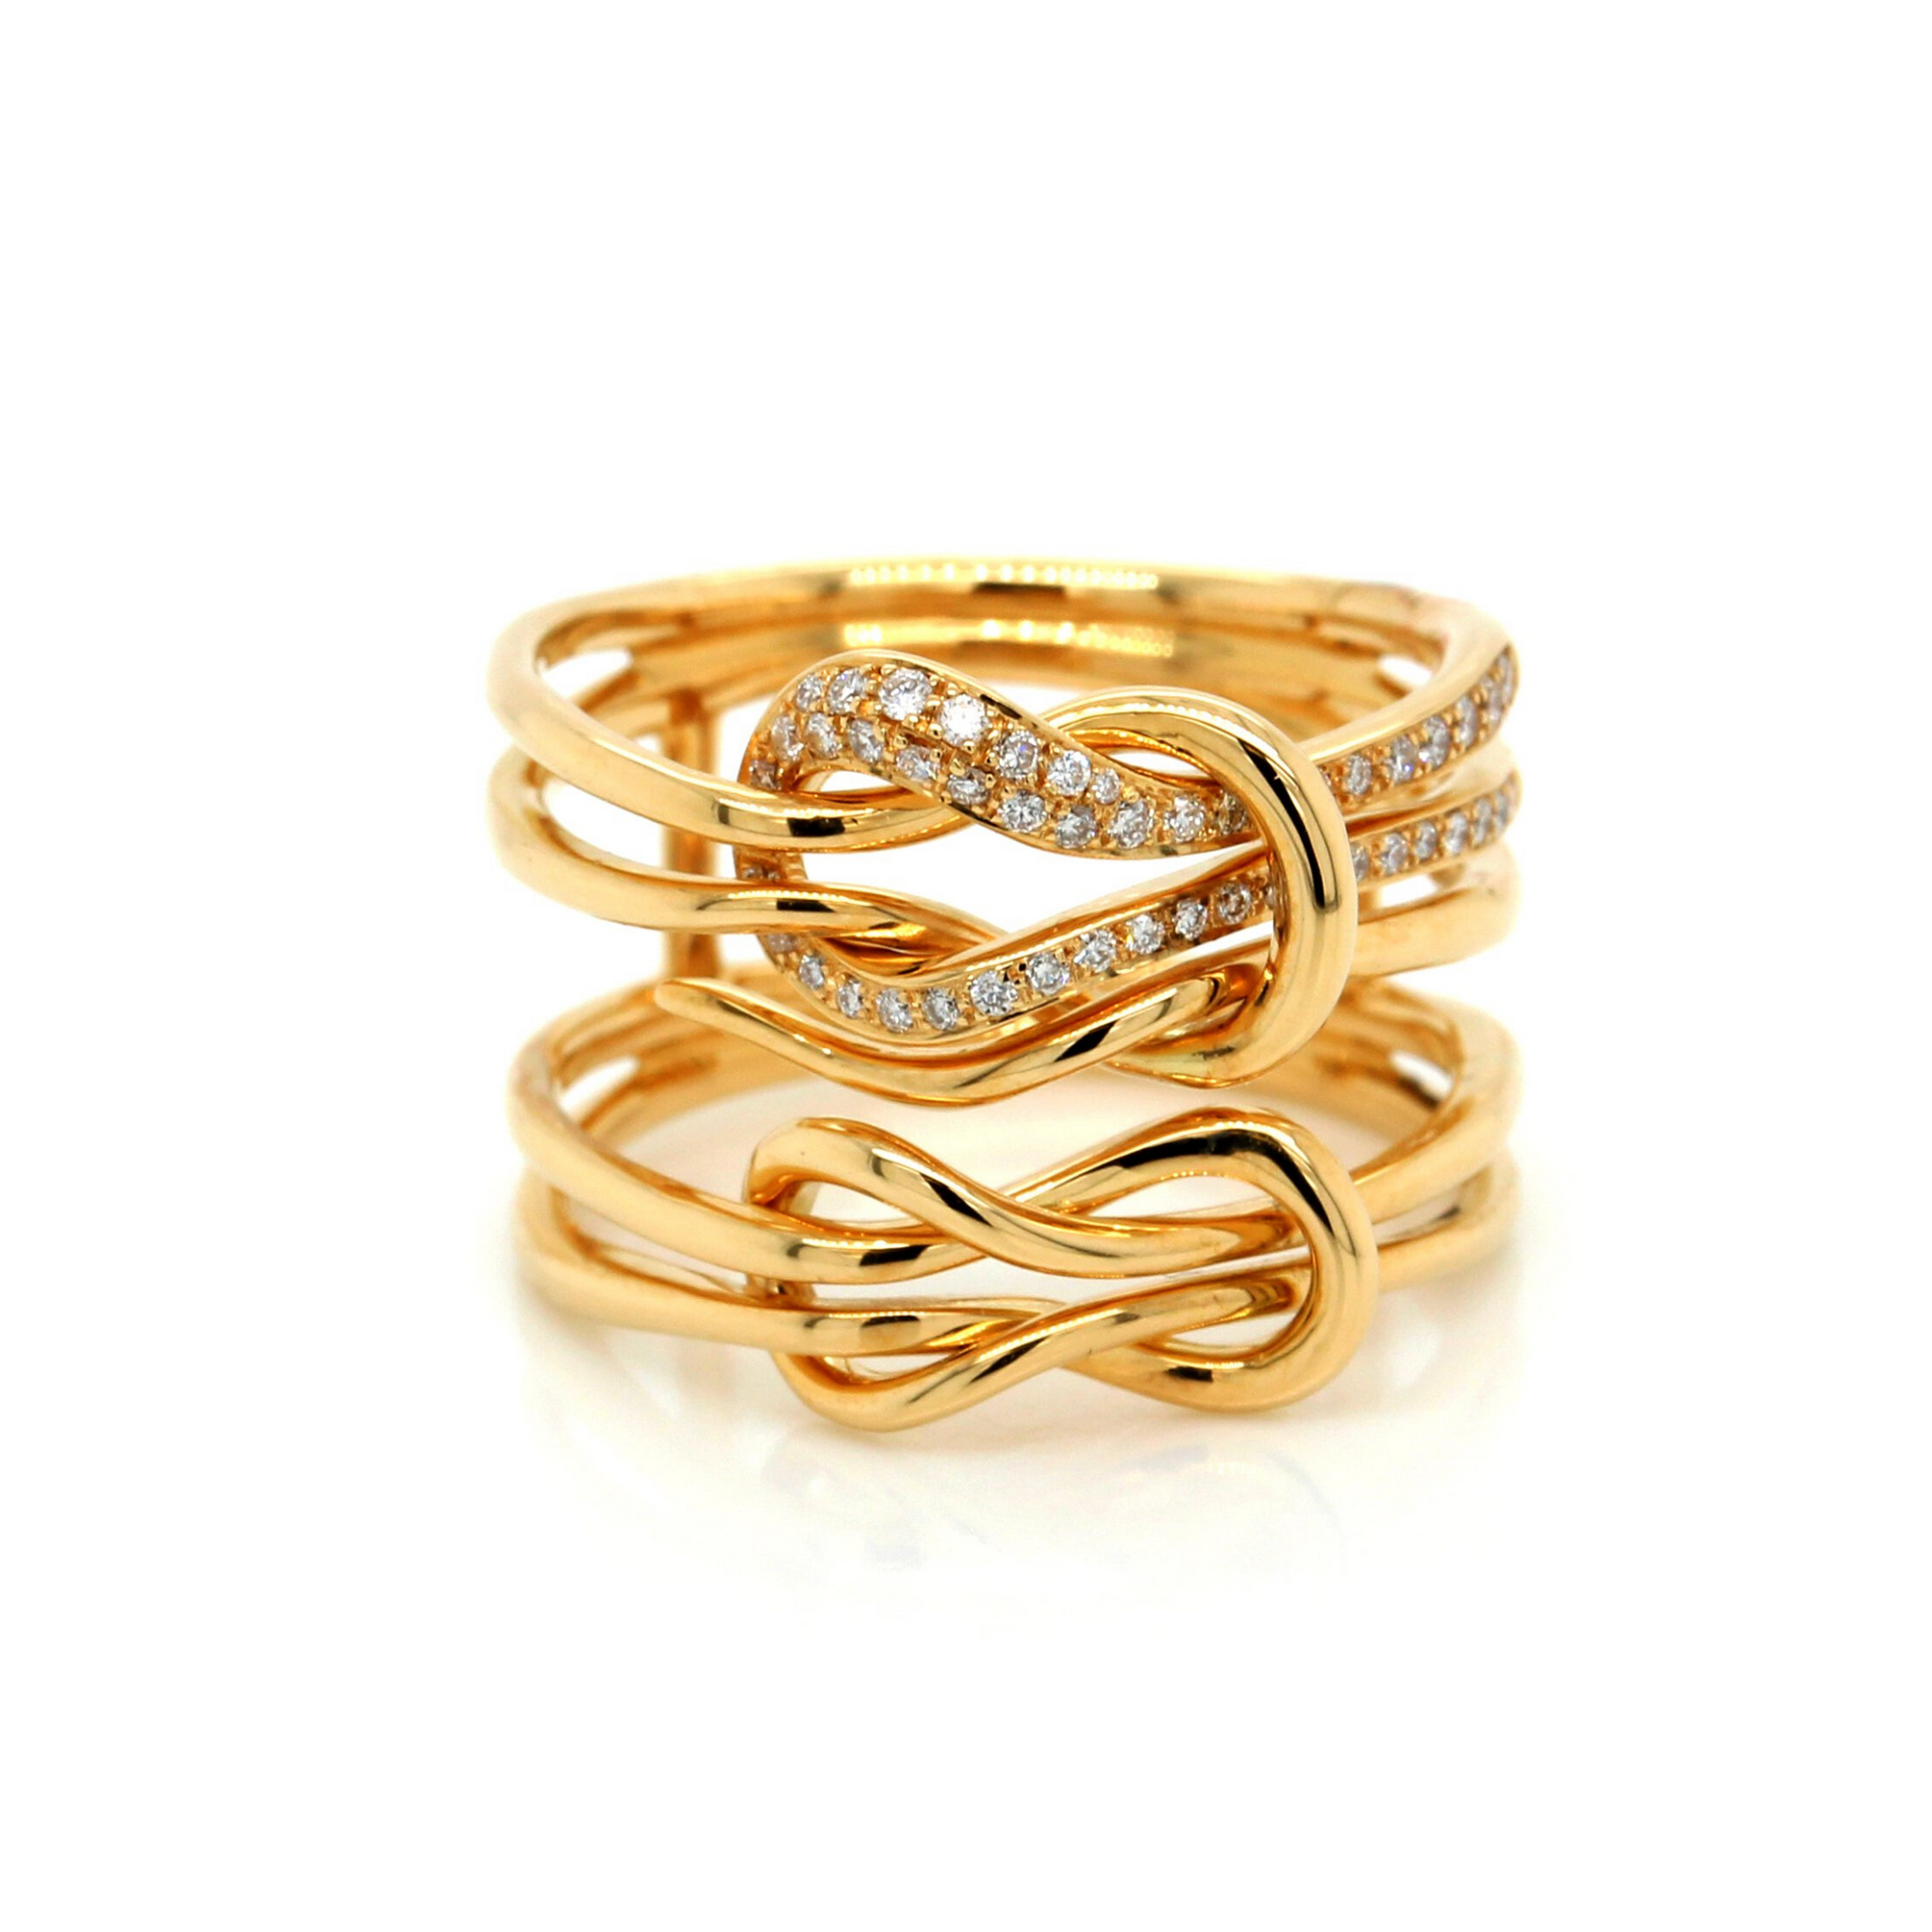 18K Yellow Gold Diamond Knot Ring